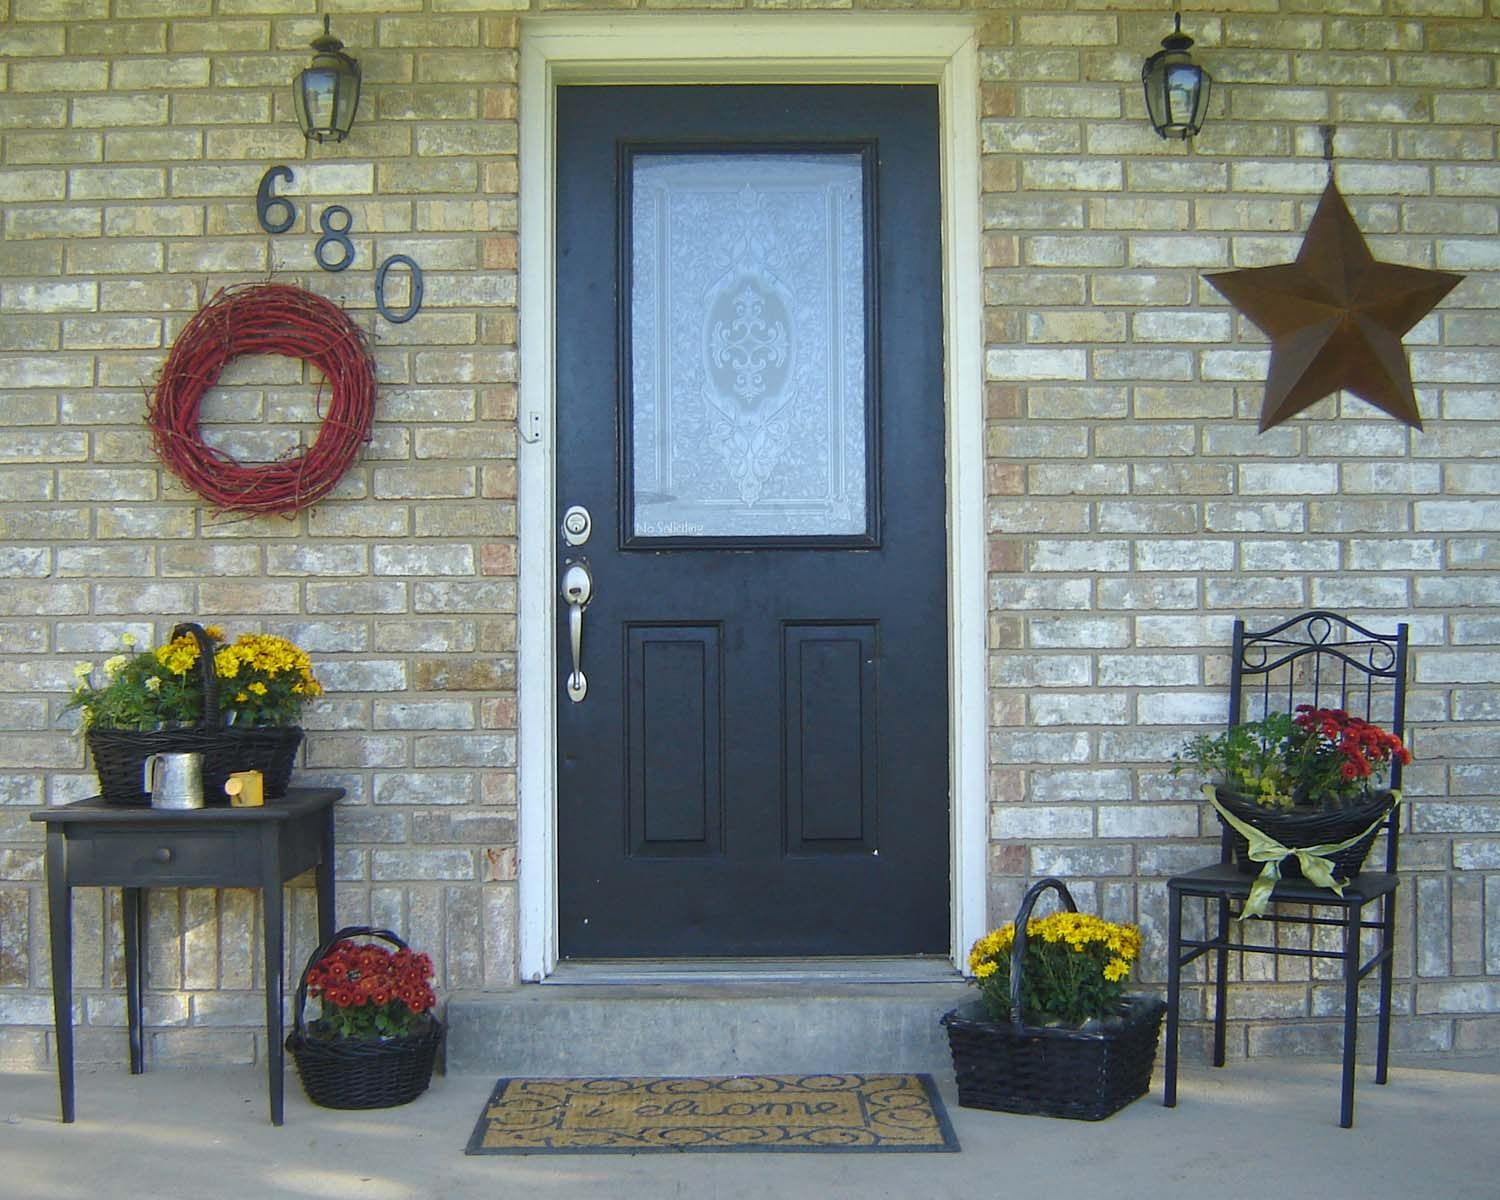 Outdoor fall decorating ideas front porch - Porch Decorating Ideas